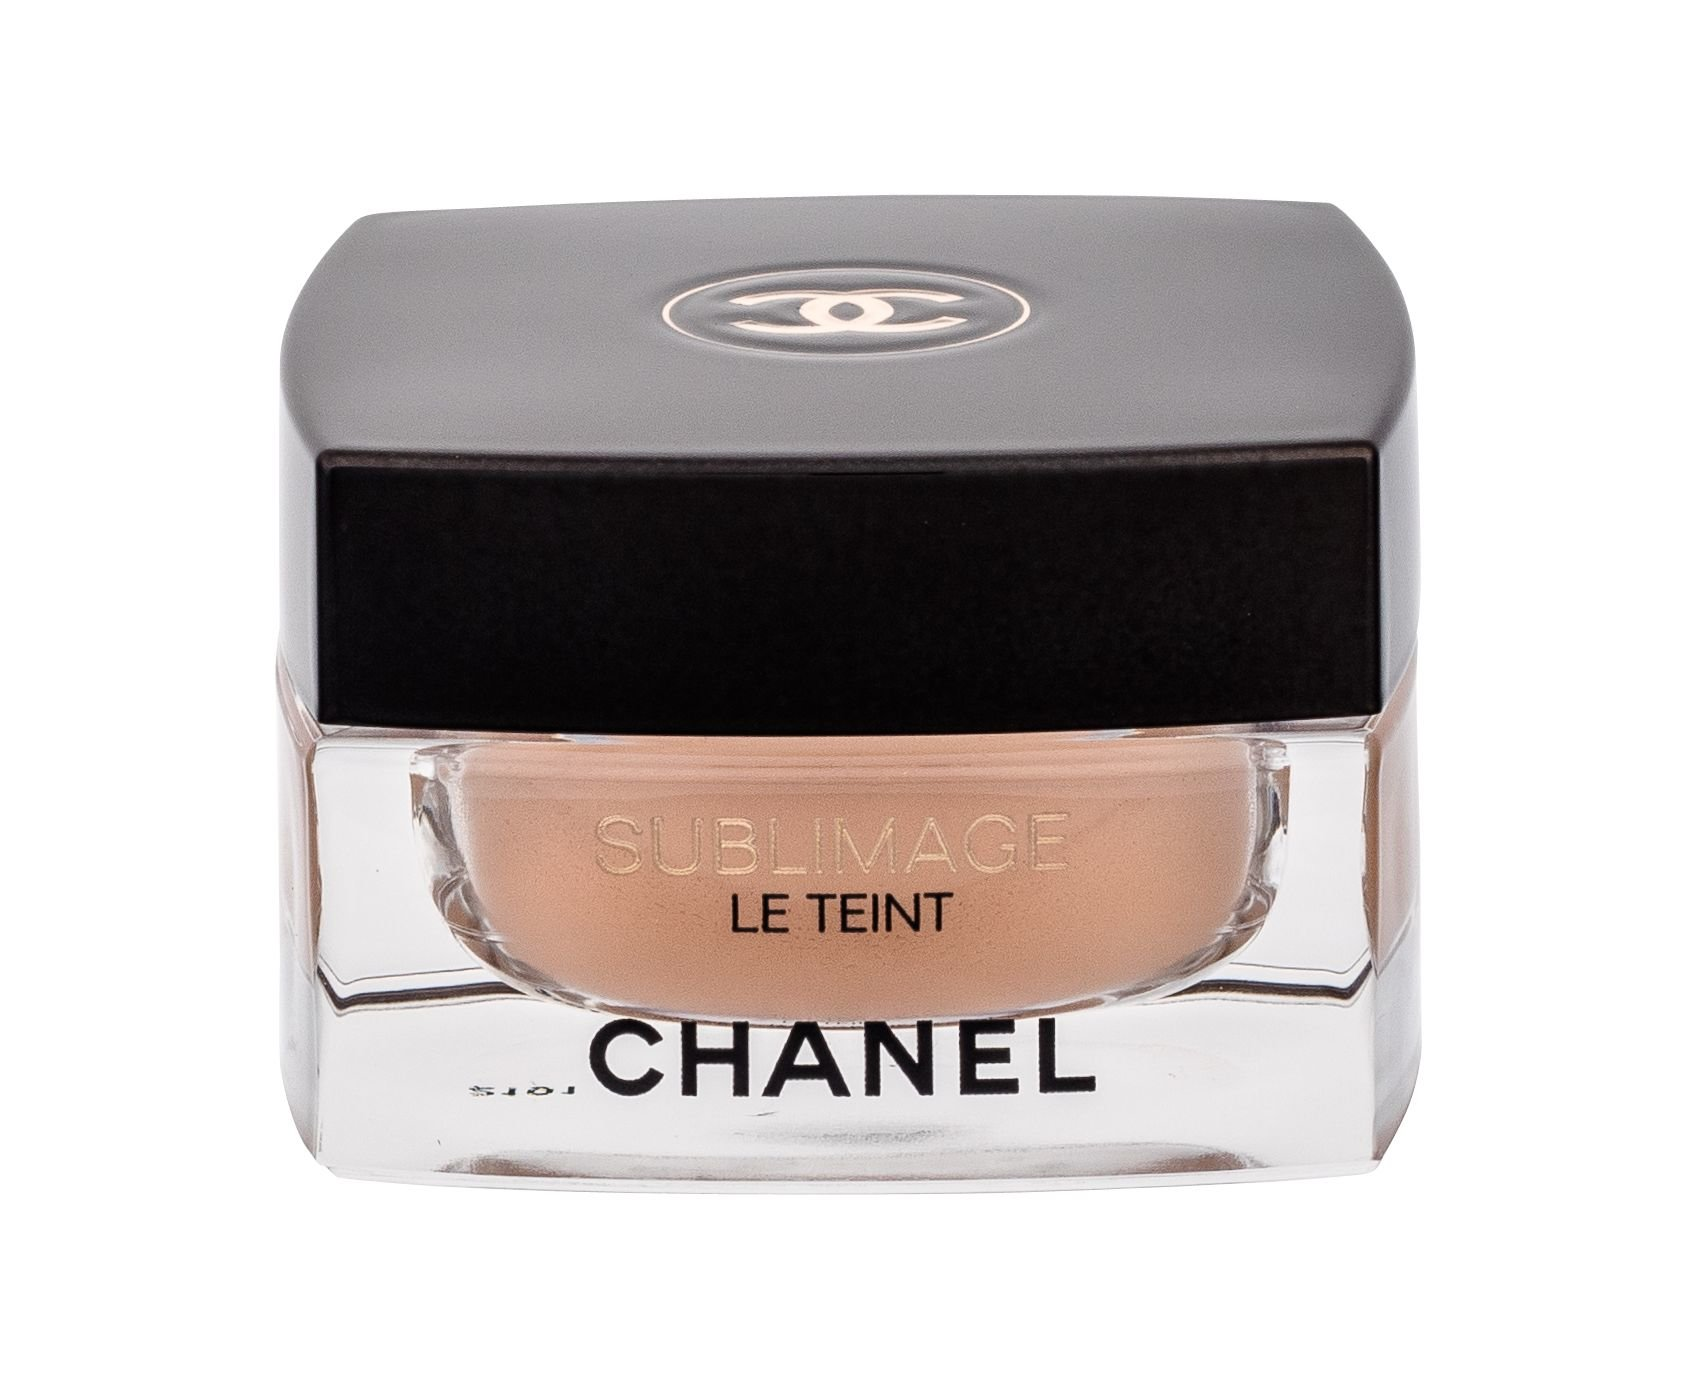 Chanel Sublimage Makeup 30ml 50 Beige Le Teint